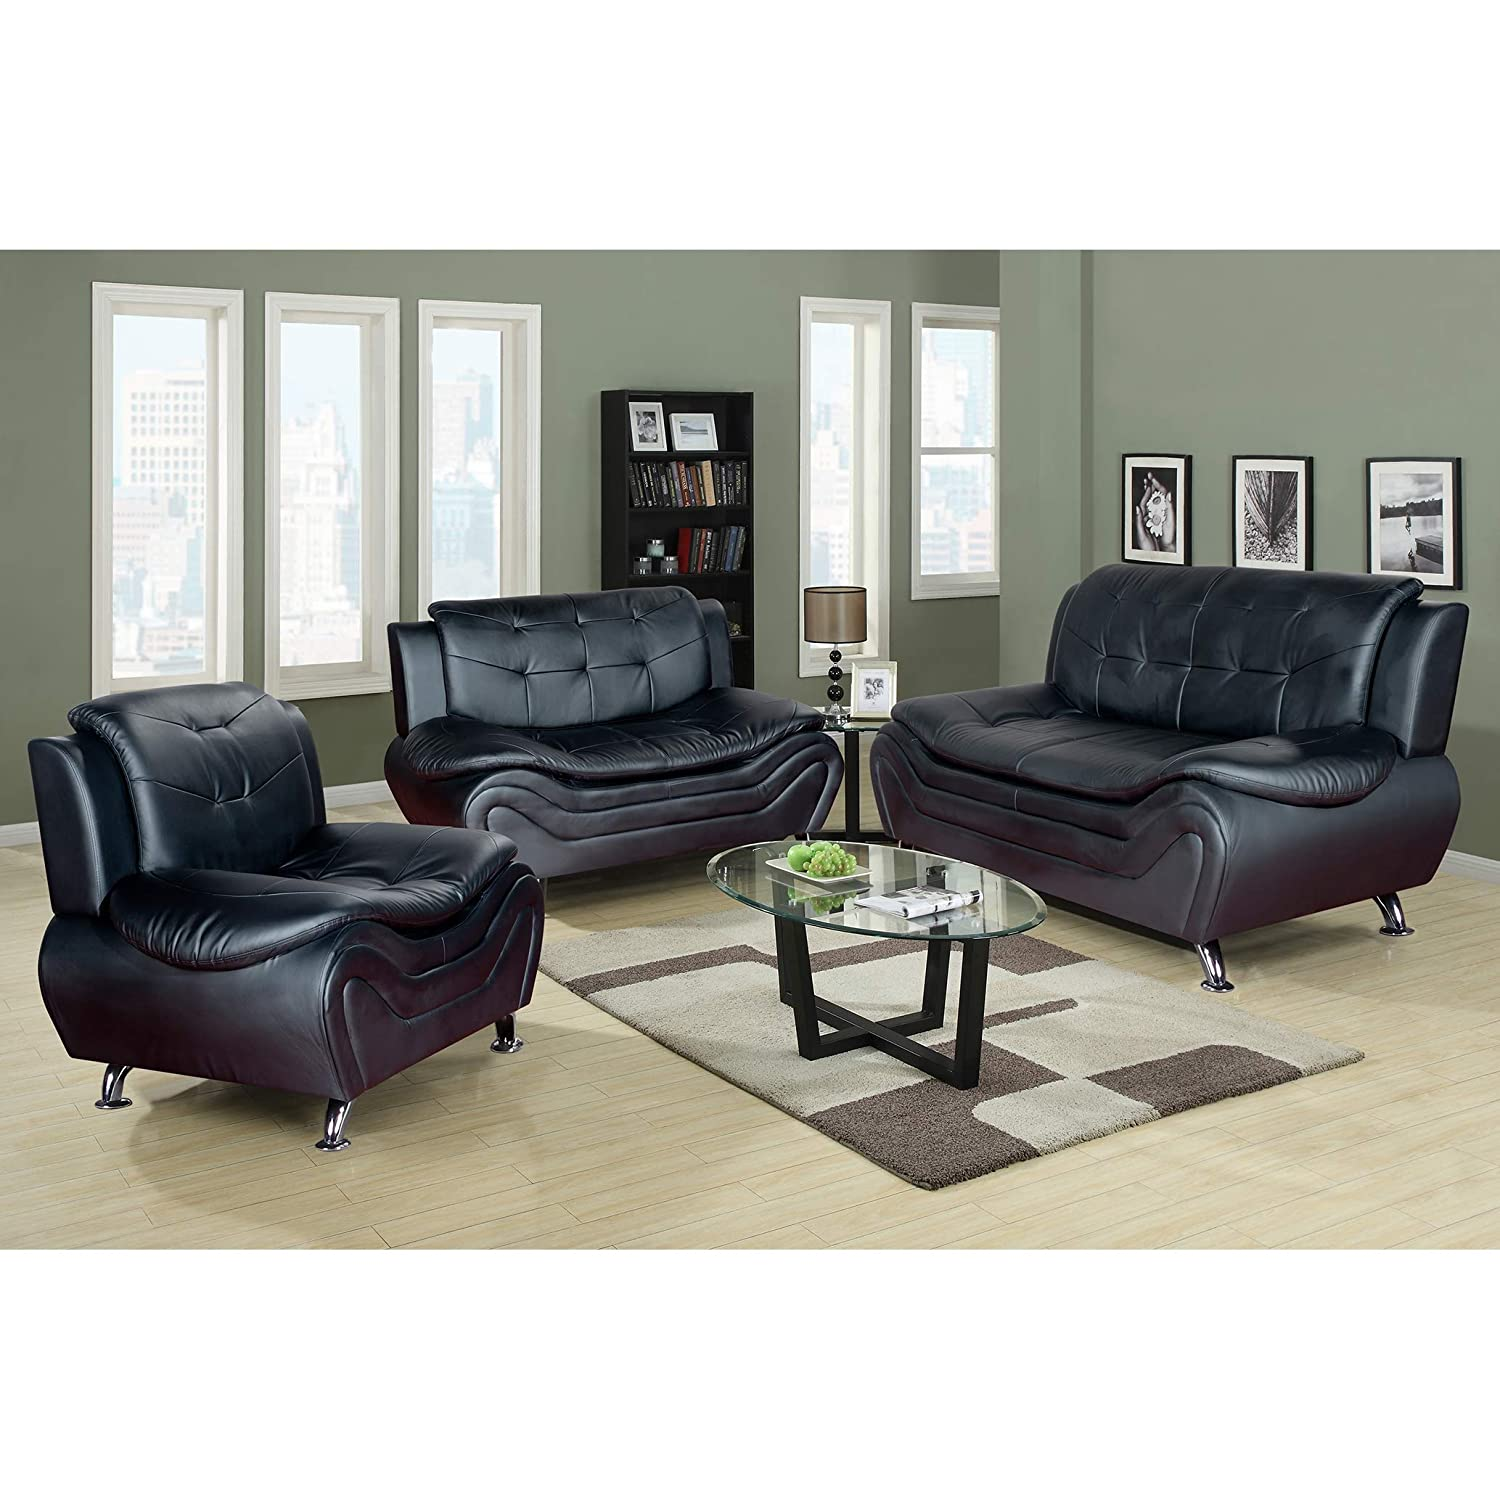 Really Feel Comfy With Black Living Room Furniture Amazon.com: AYCP FURNITURE Decorative Black Sofa Set, 3pcs Comfortable Faux  Leather Sofa-loveseat-Chair: Kitchen u0026 Dining